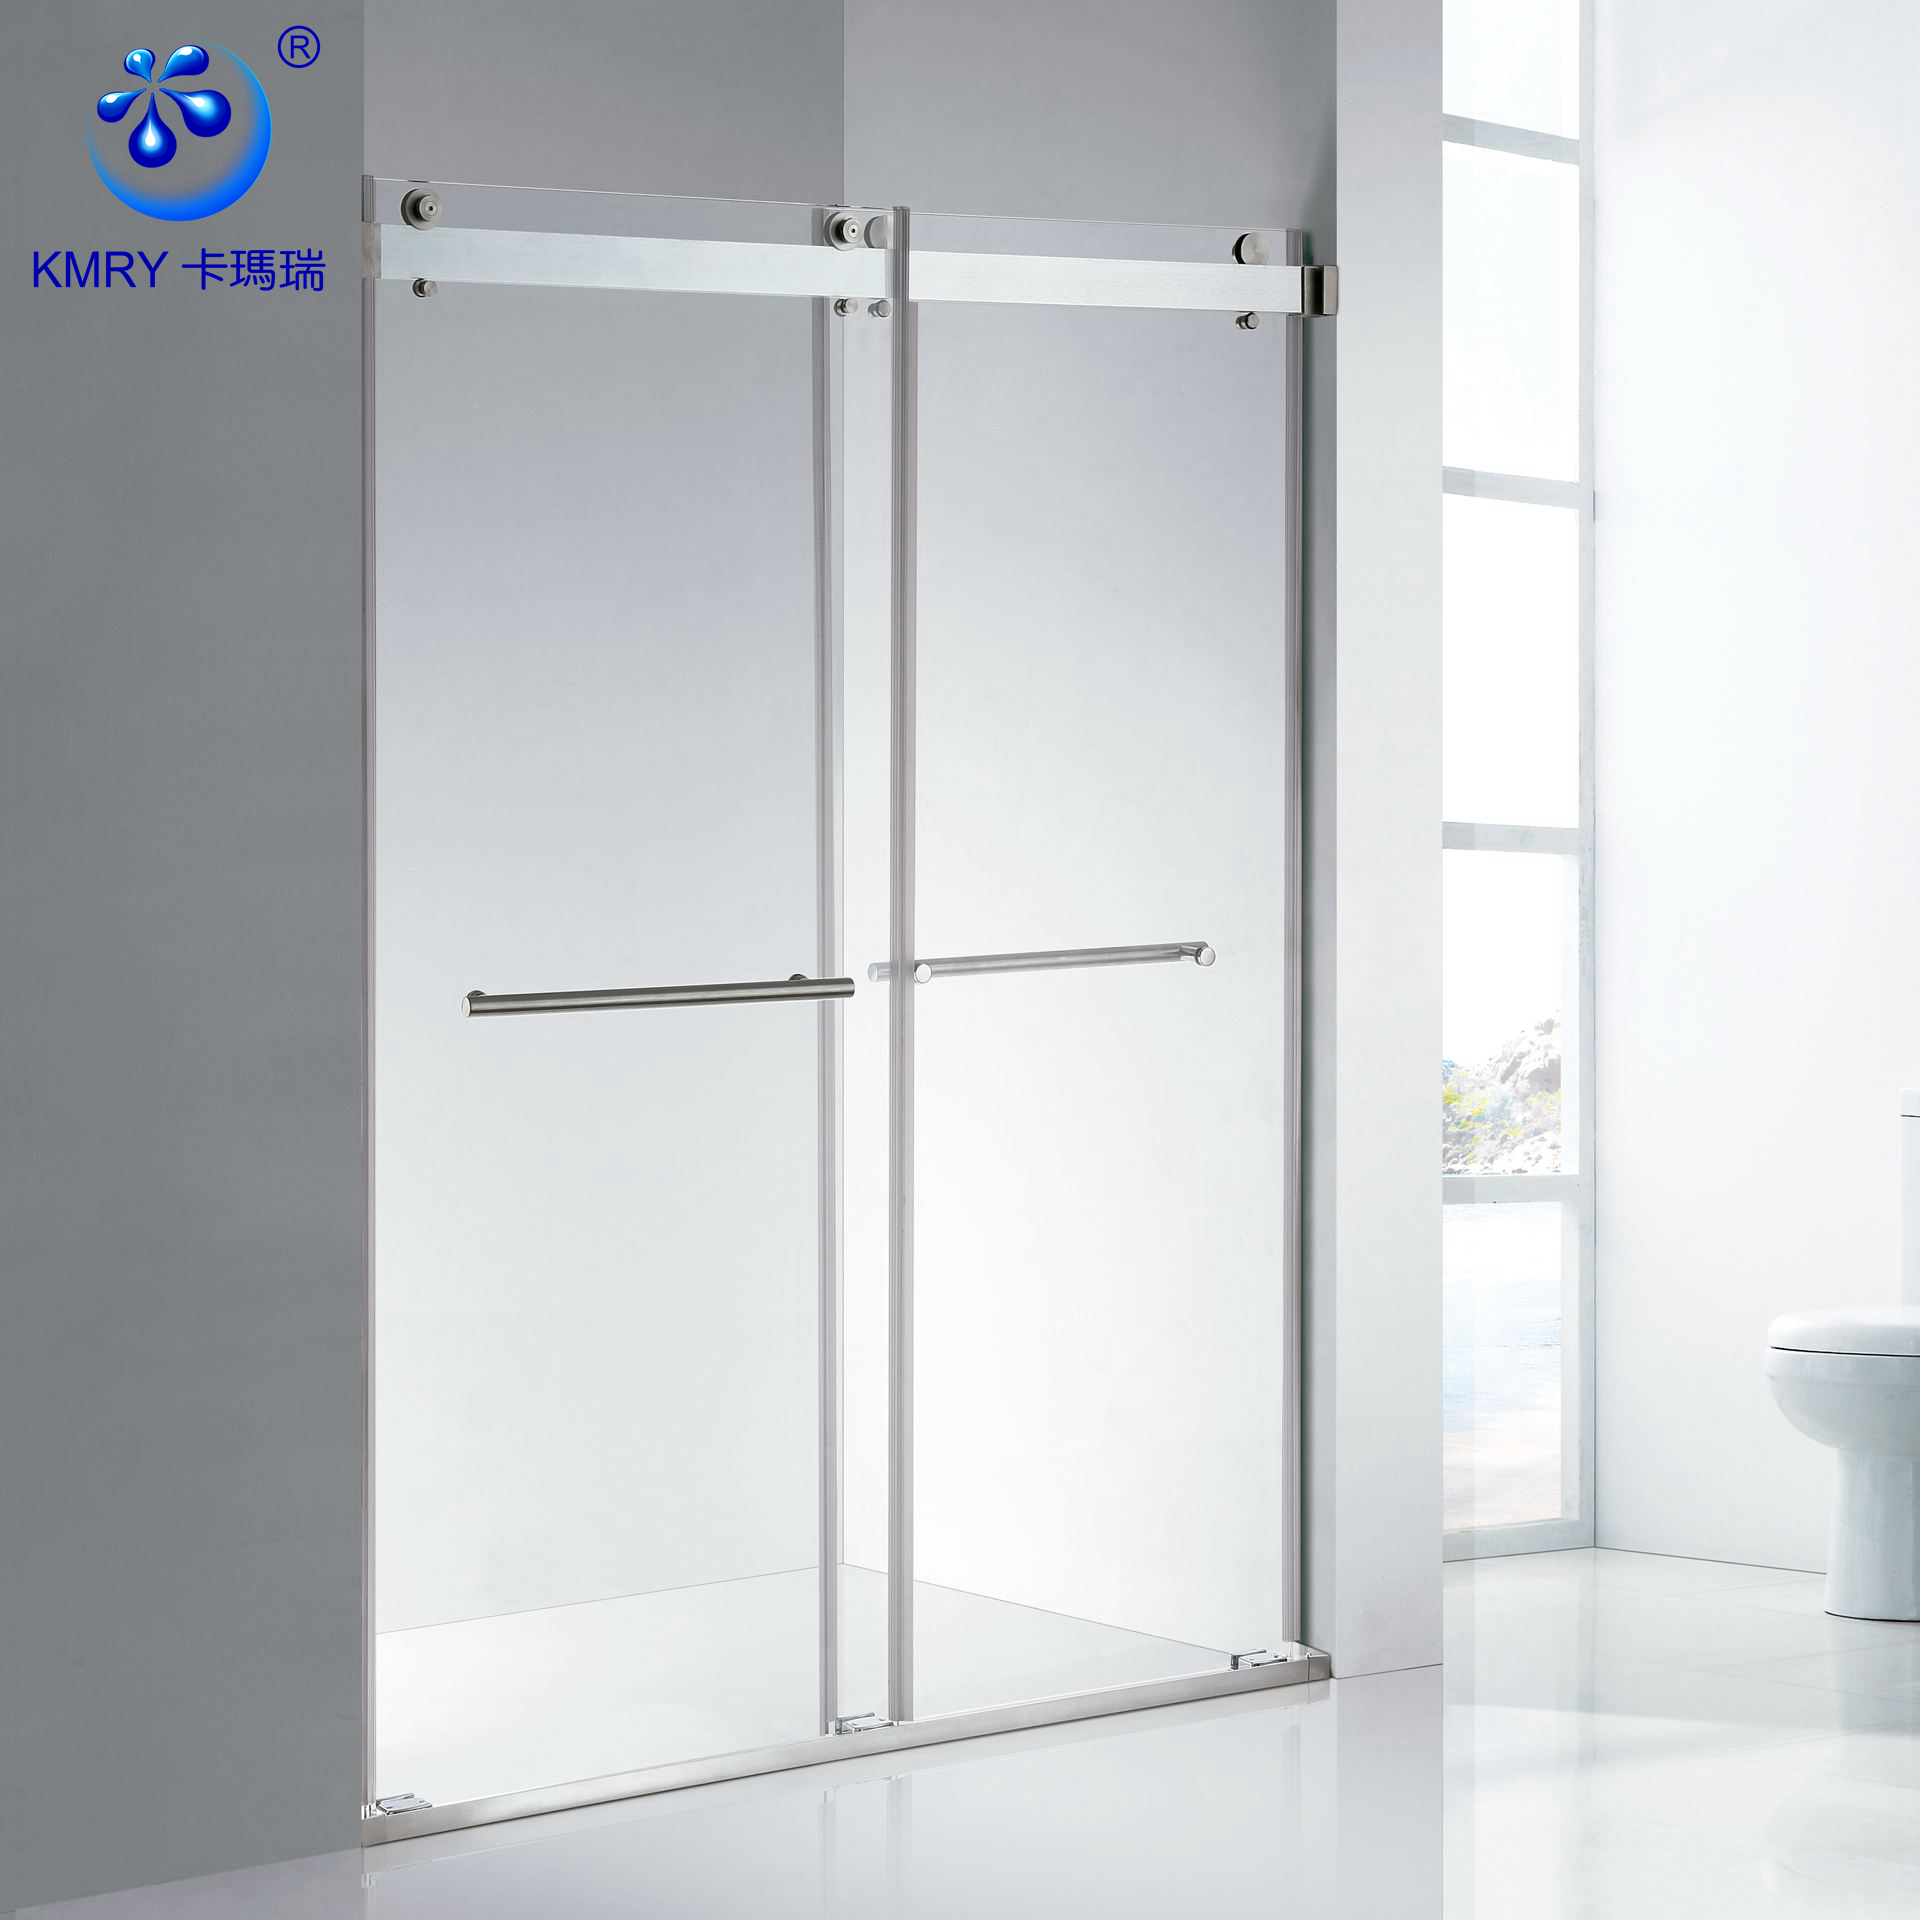 KD5230A Stainless Steel Frameless Bypass 2 Sliding Frosted Glass Shower Room